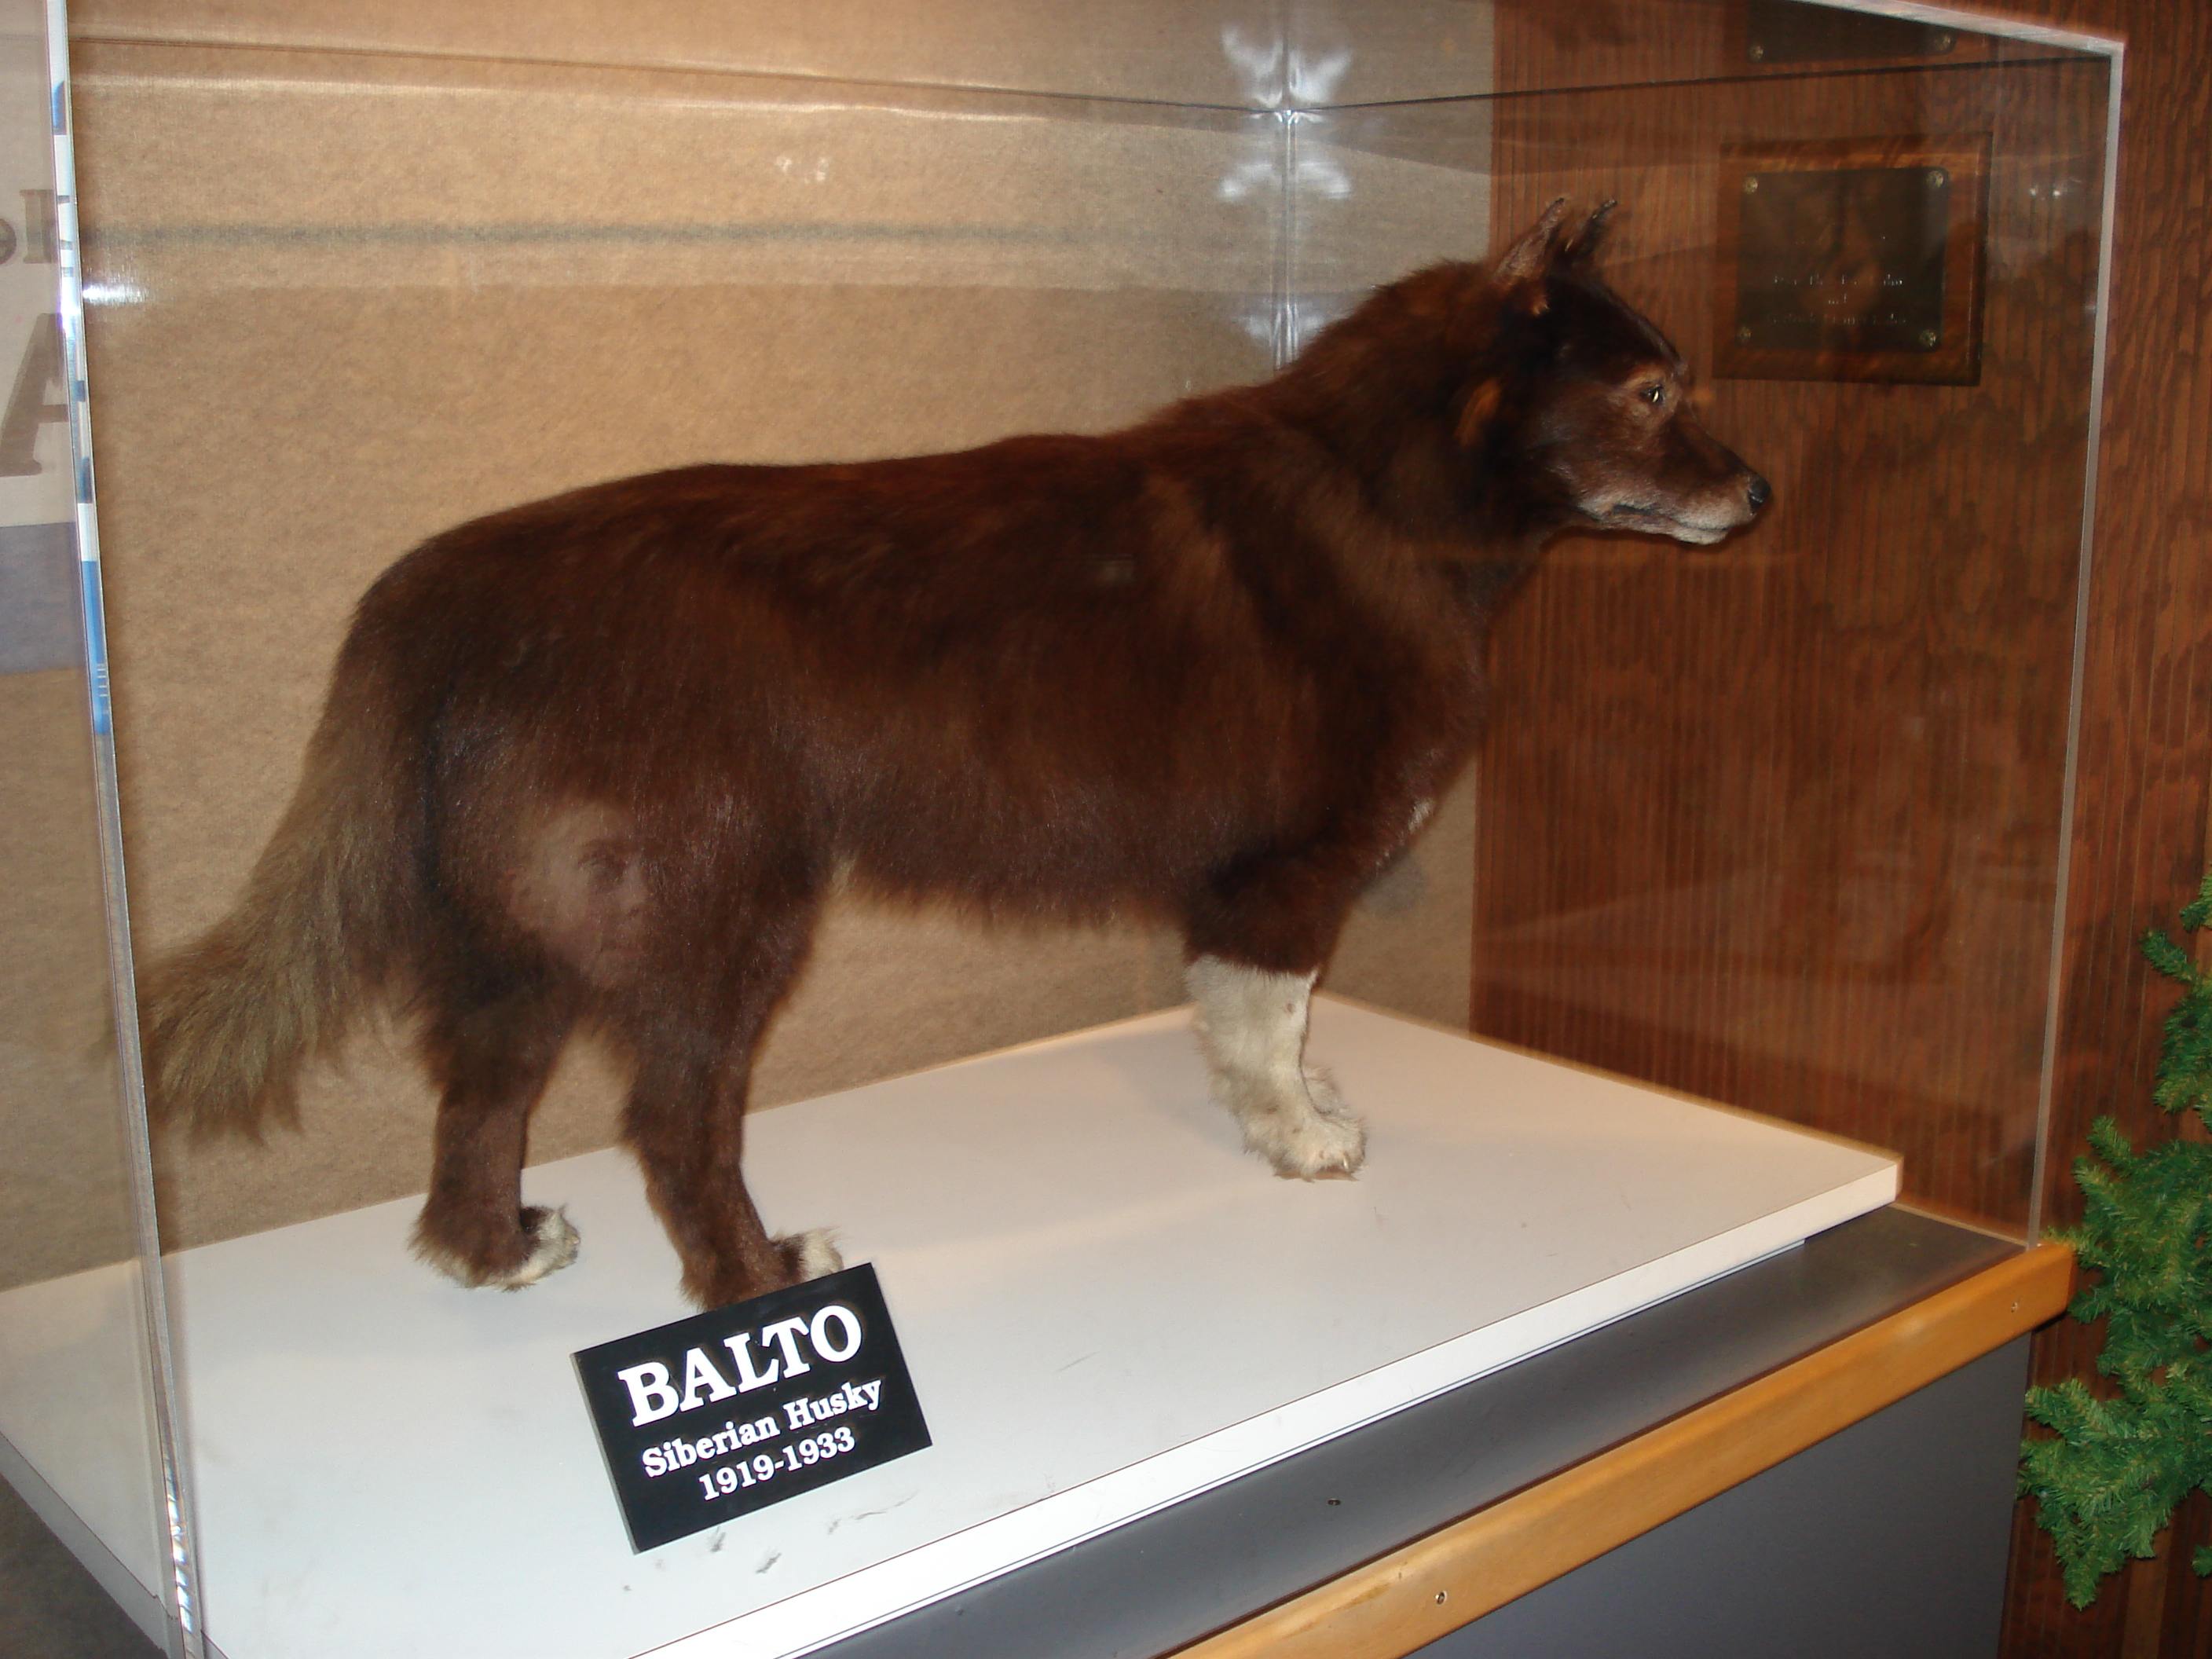 http://upload.wikimedia.org/wikipedia/commons/8/8b/Balto_CLE.JPG